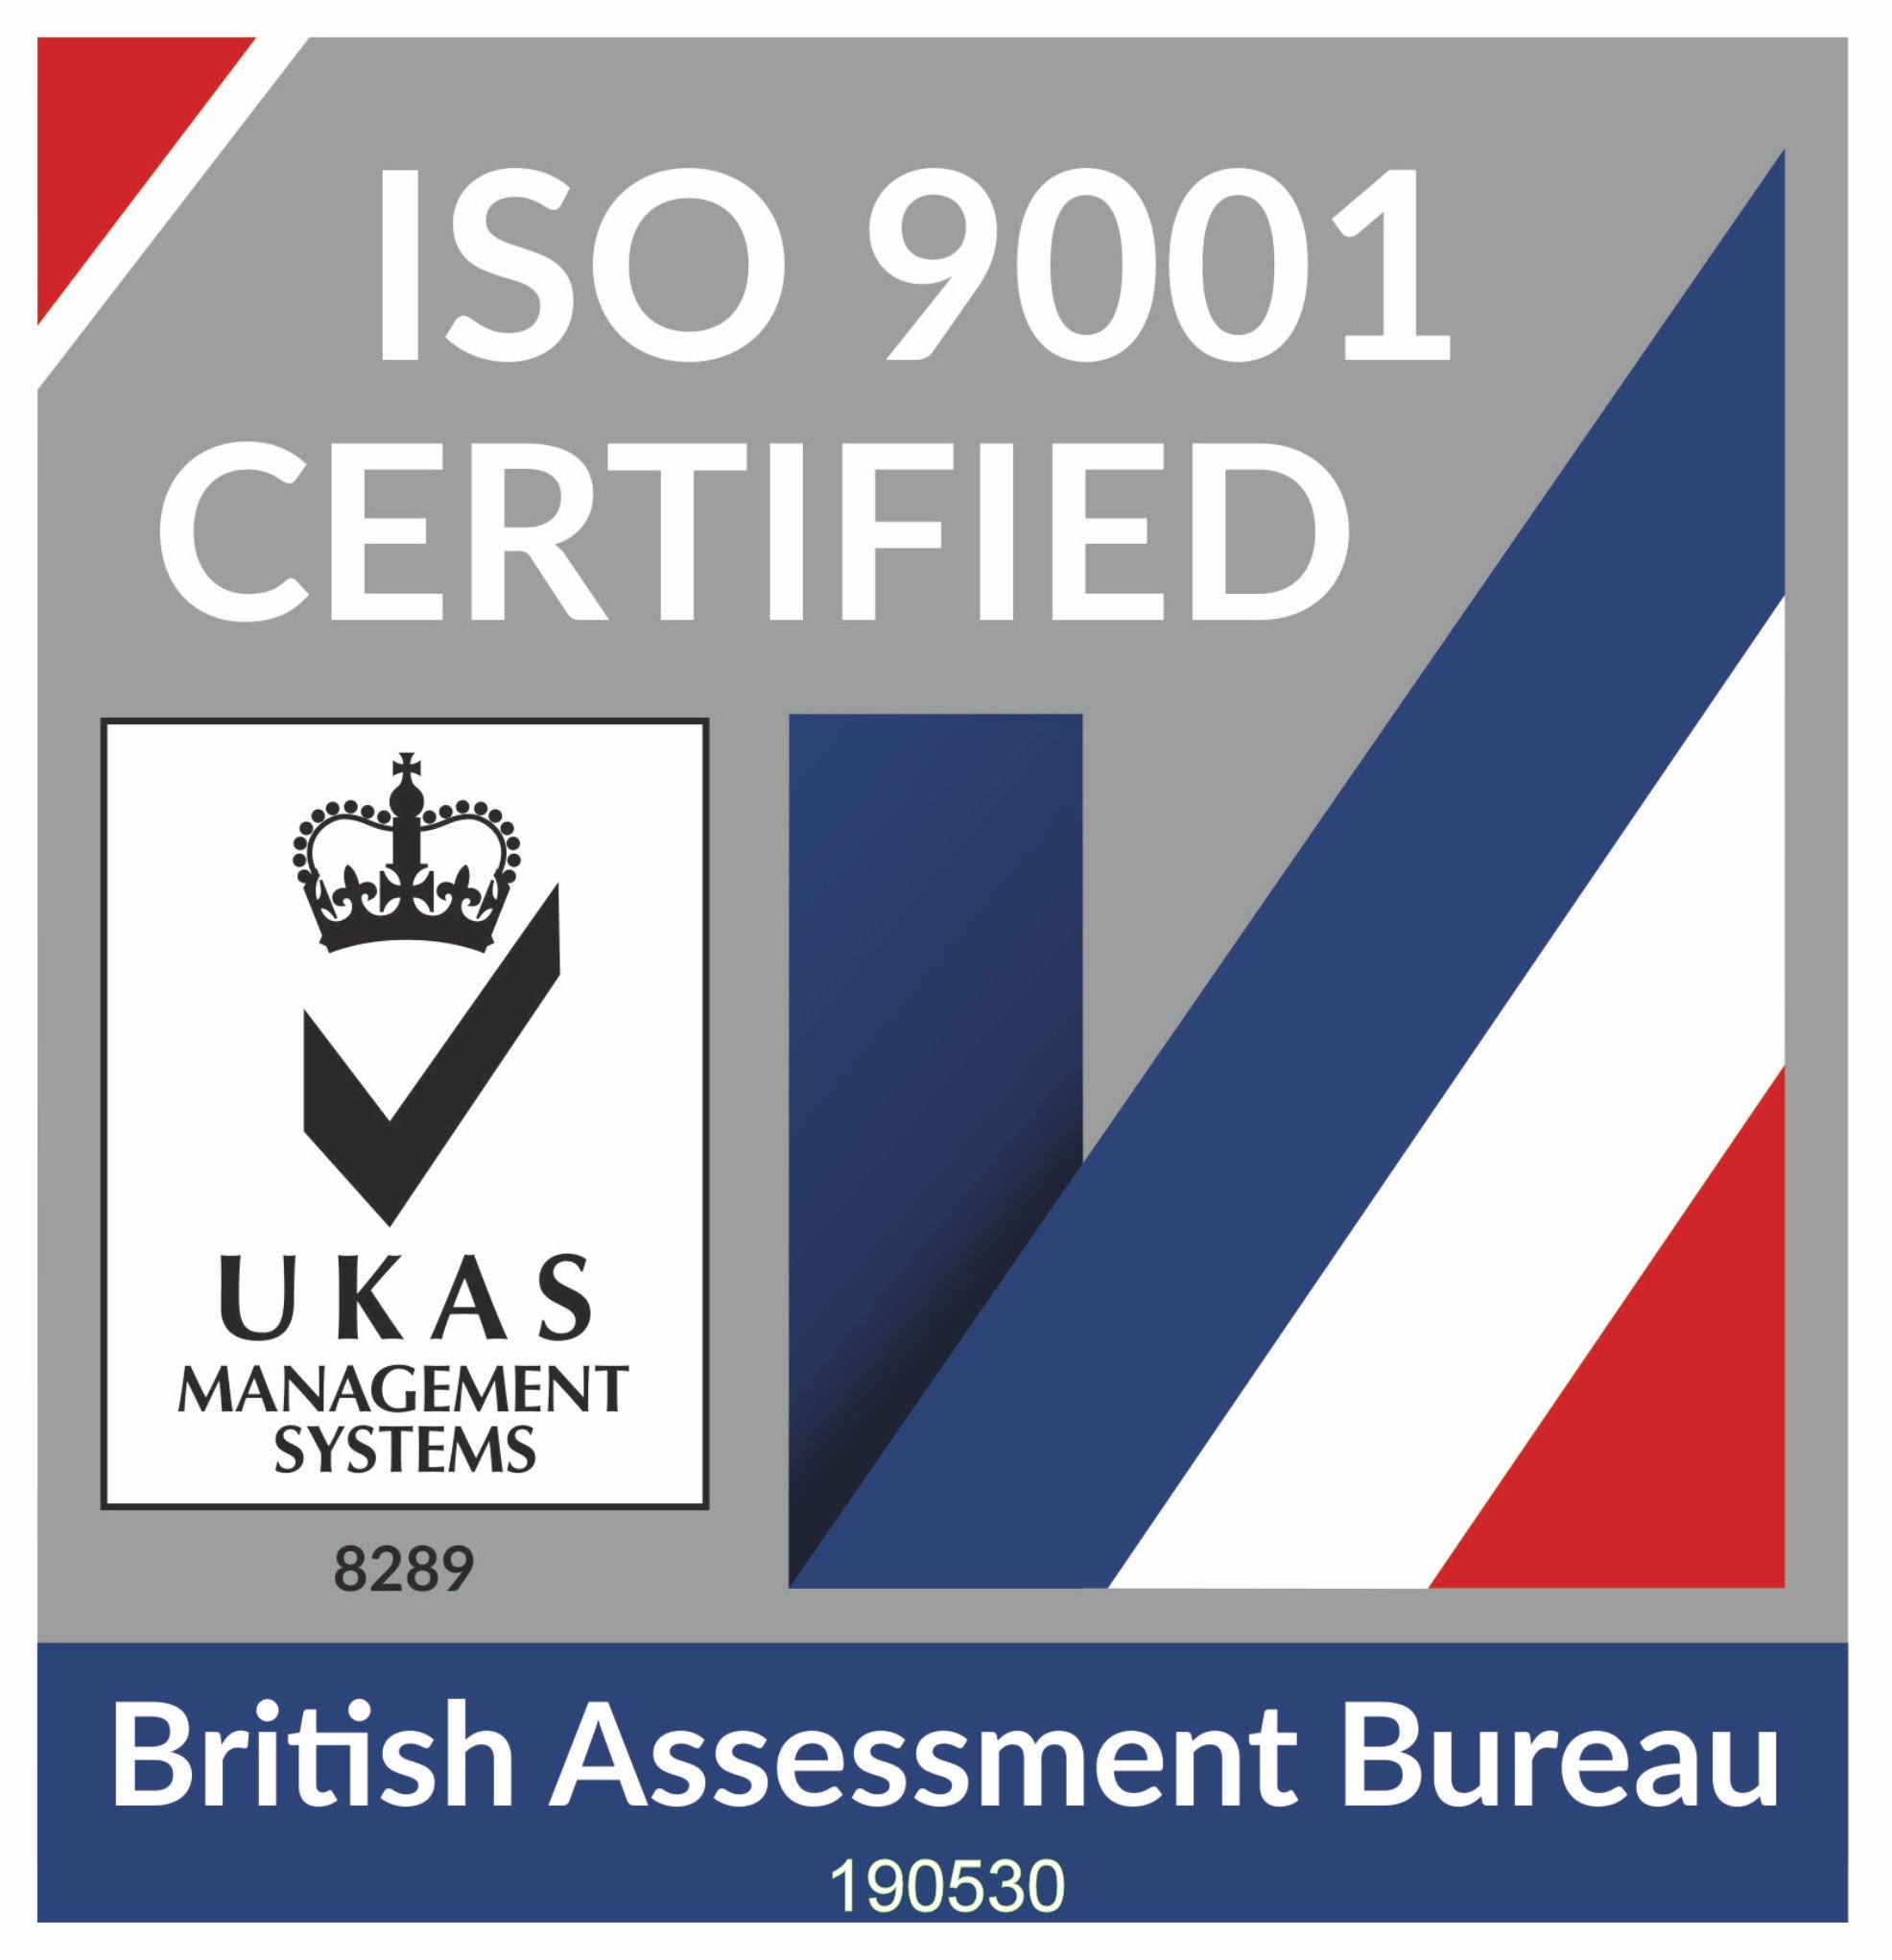 Image confirming ISO 9001 Certification from the British Assessment Bureau